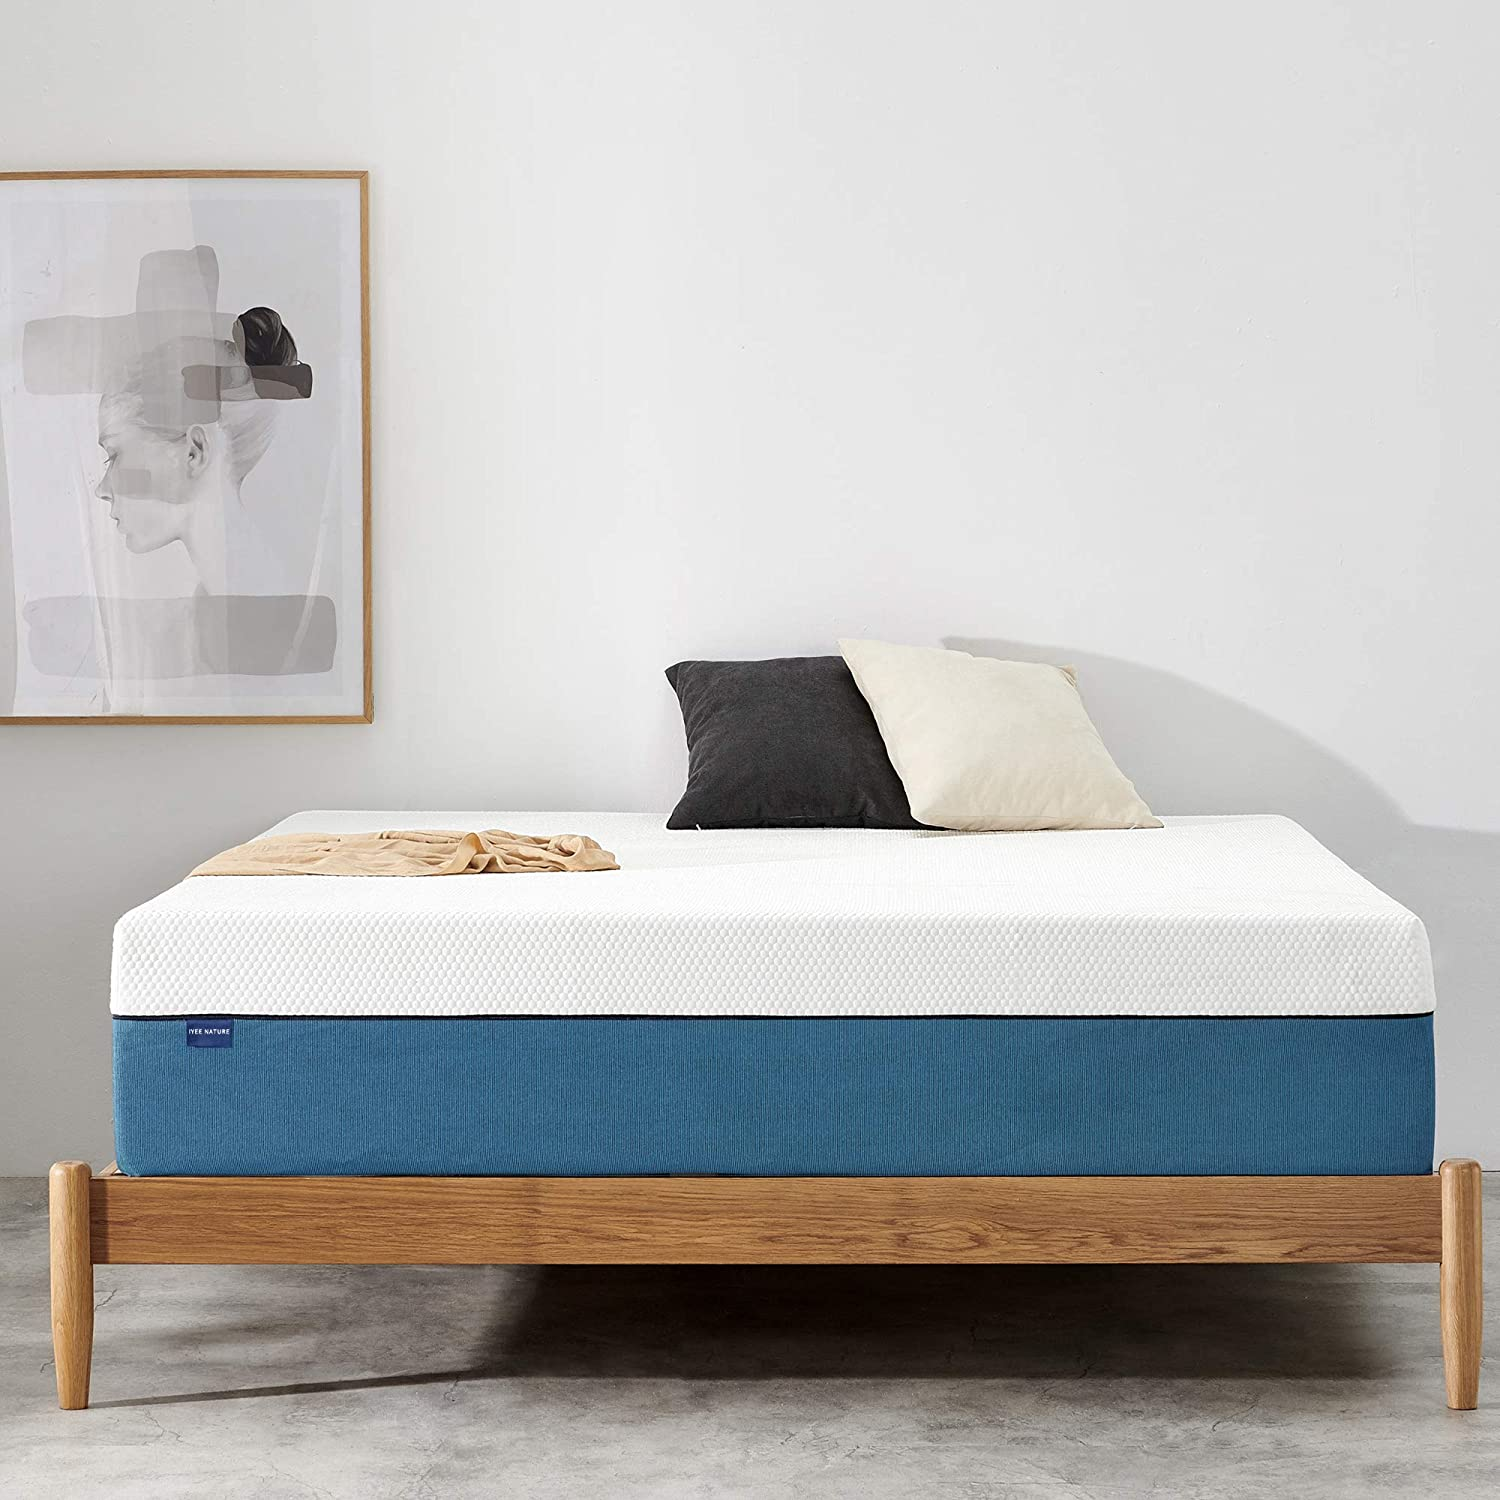 Twin Mattress, Coolvie Twin Size Gel Memory Foam Hybrid Mattress, Individual Pocket Springs with Foam for Back Pain Relief & Cool Sleep, Bed in a Box, 10 Inch, Single Size